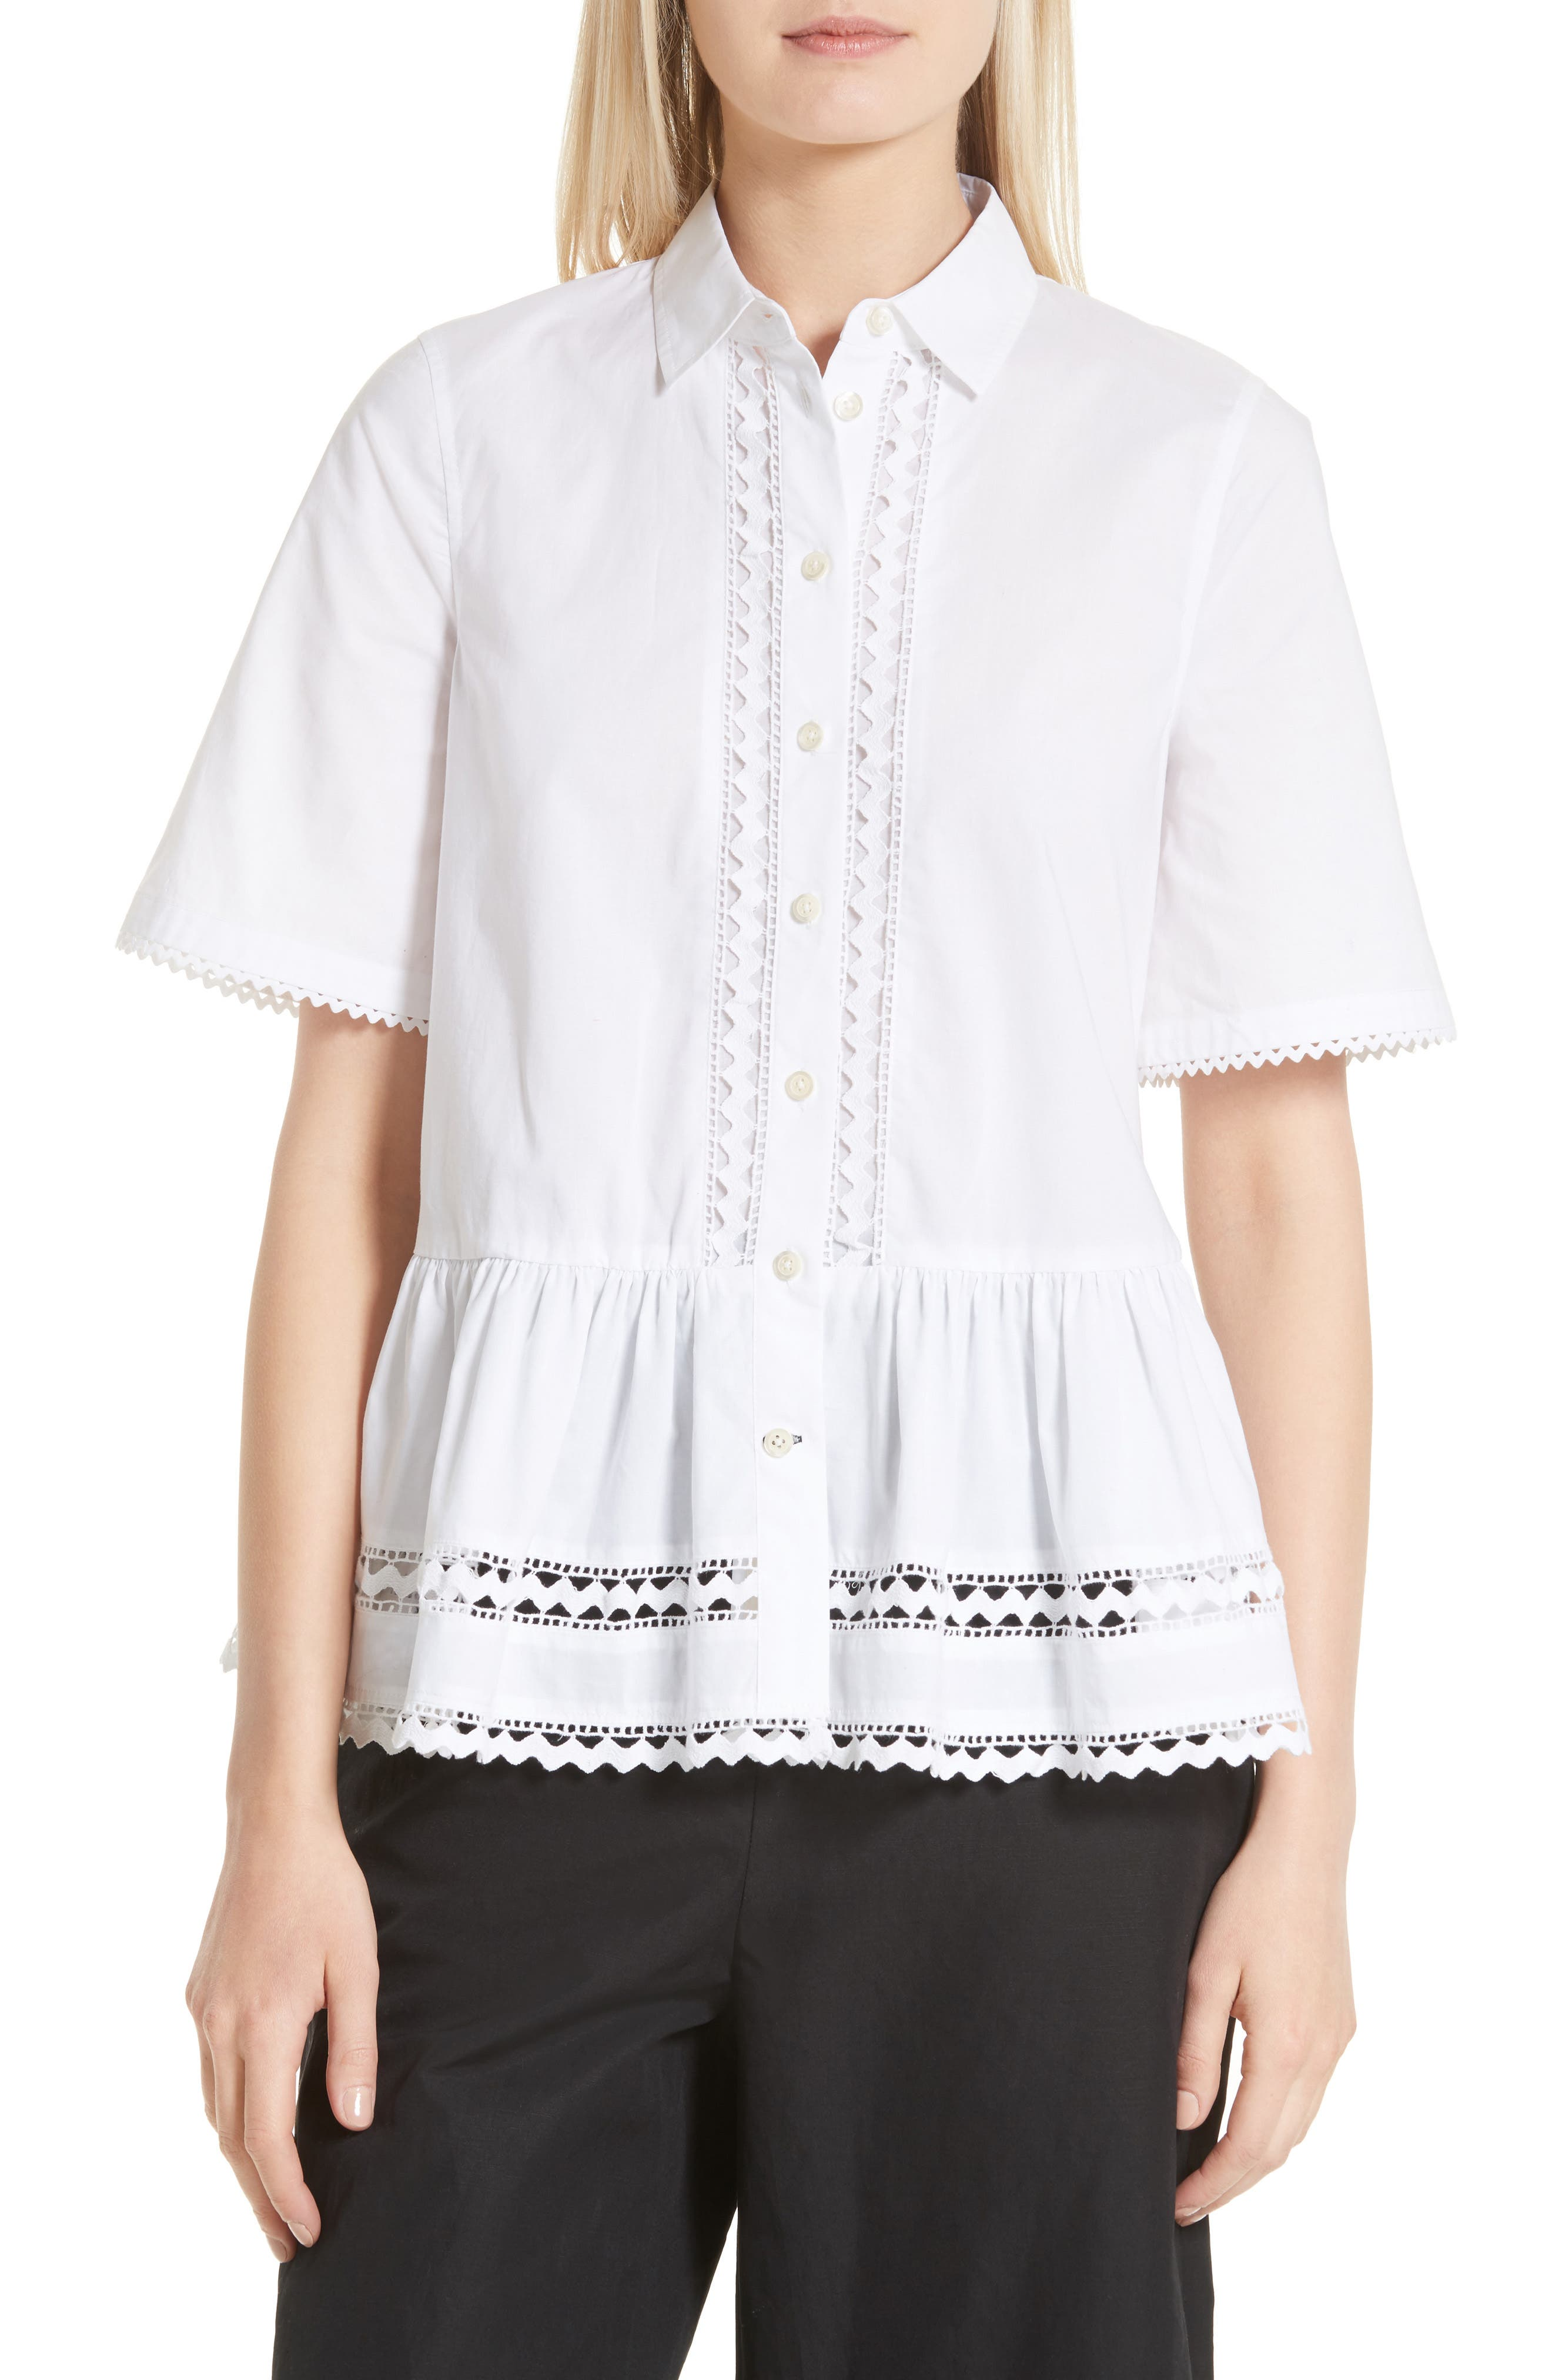 Alternate Image 1 Selected - kate spade new york lace inset peplum top